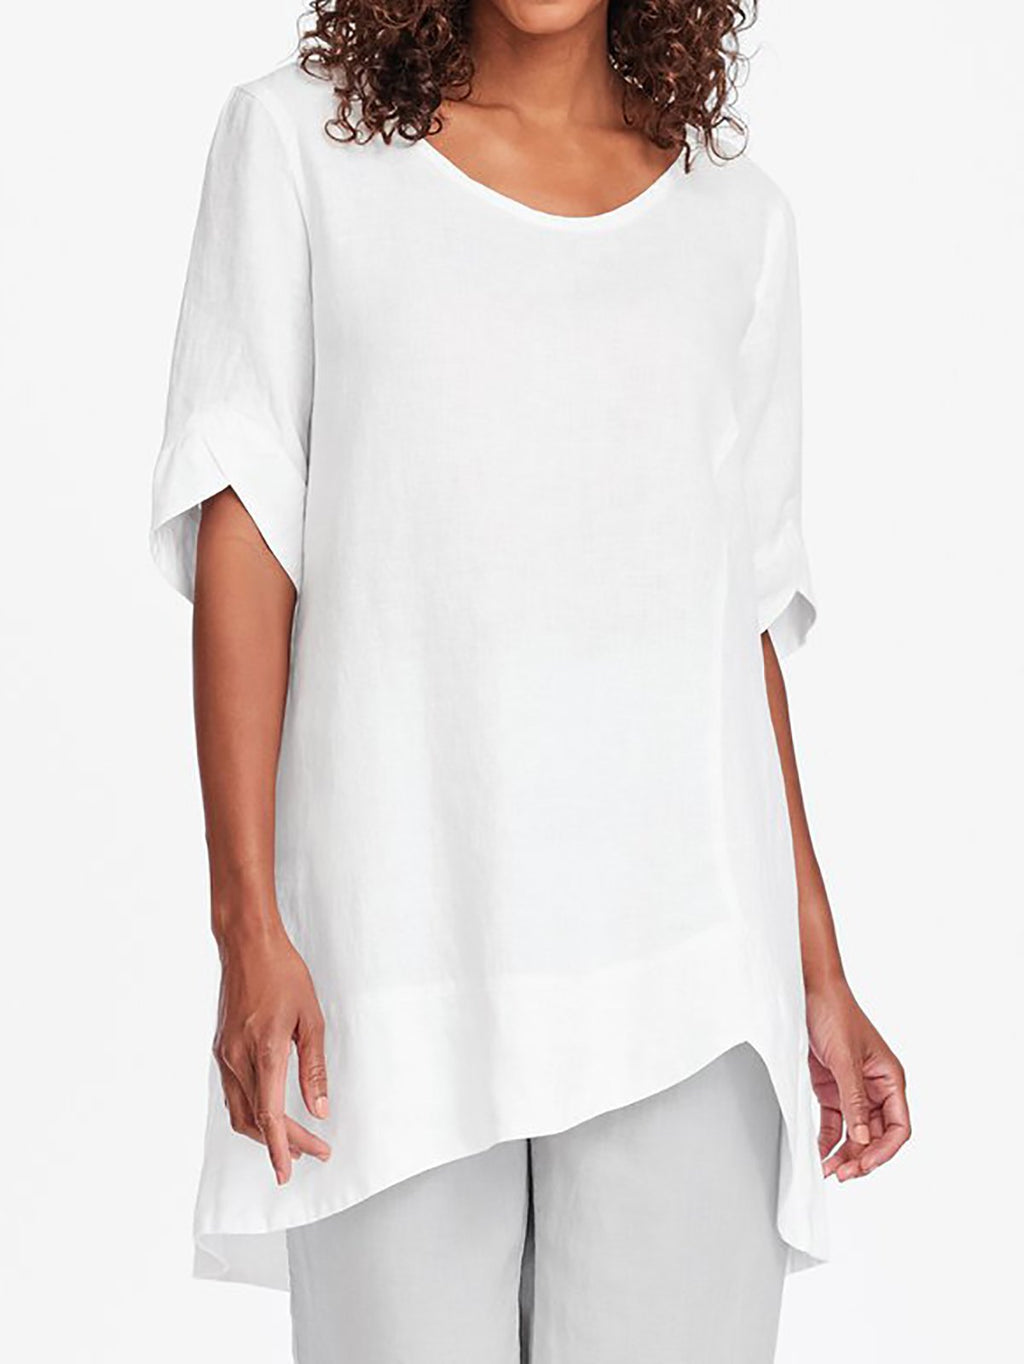 Asymmetrical Hem Short Sleeve Plus Size Shirts Tuni